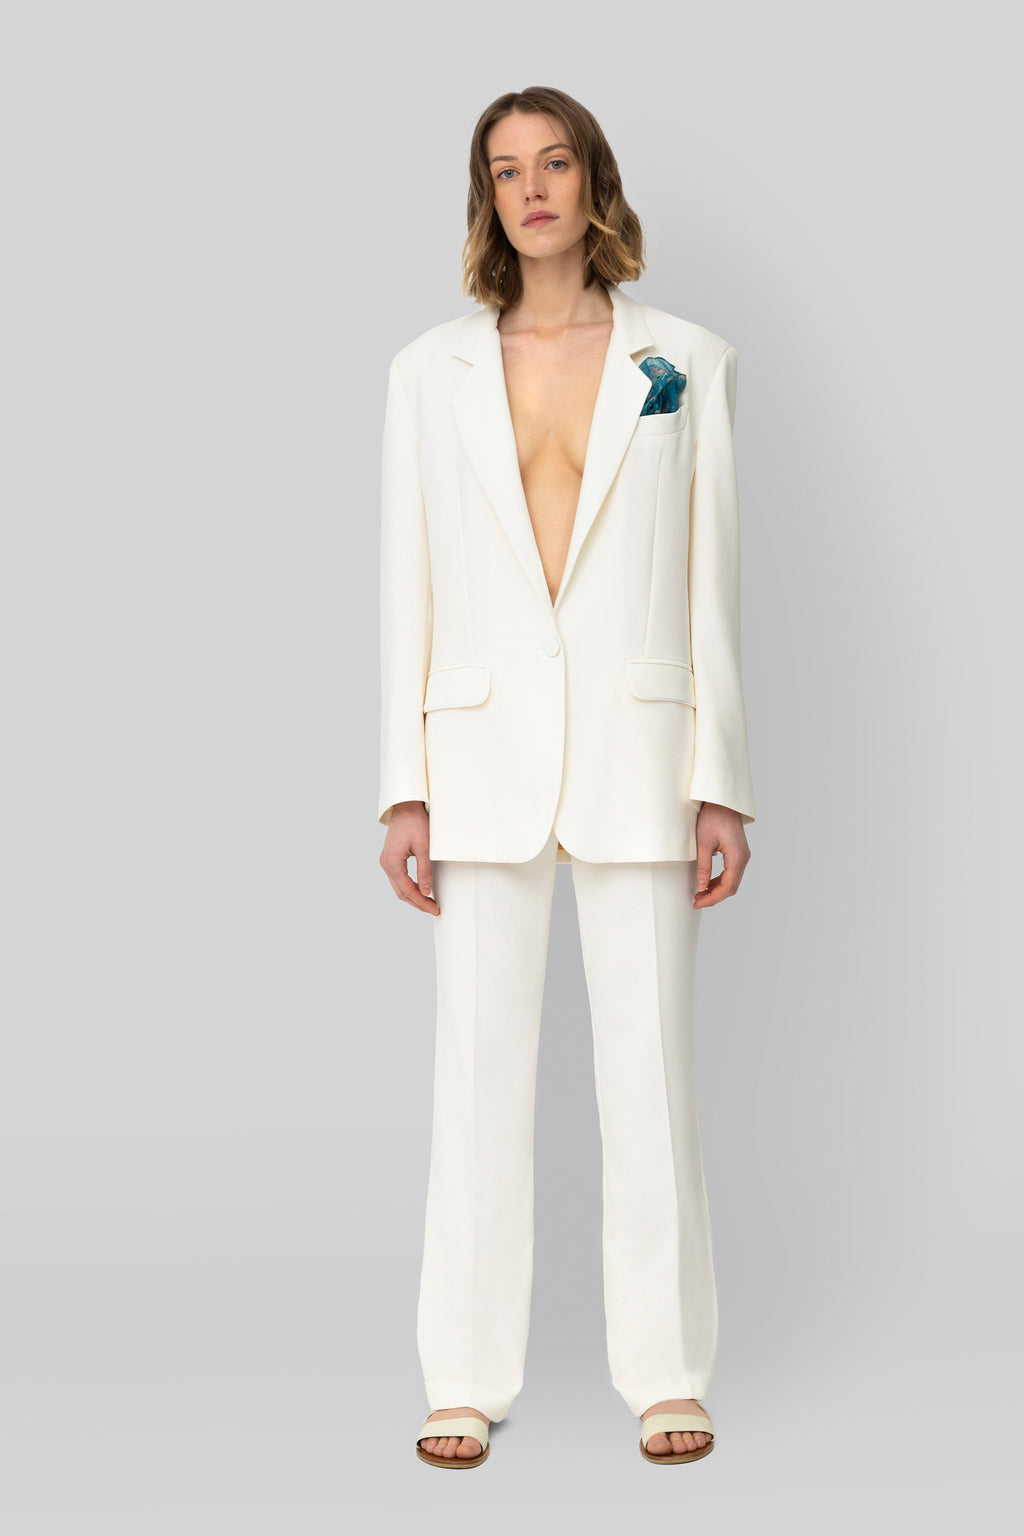 The Cream Lover Blazer